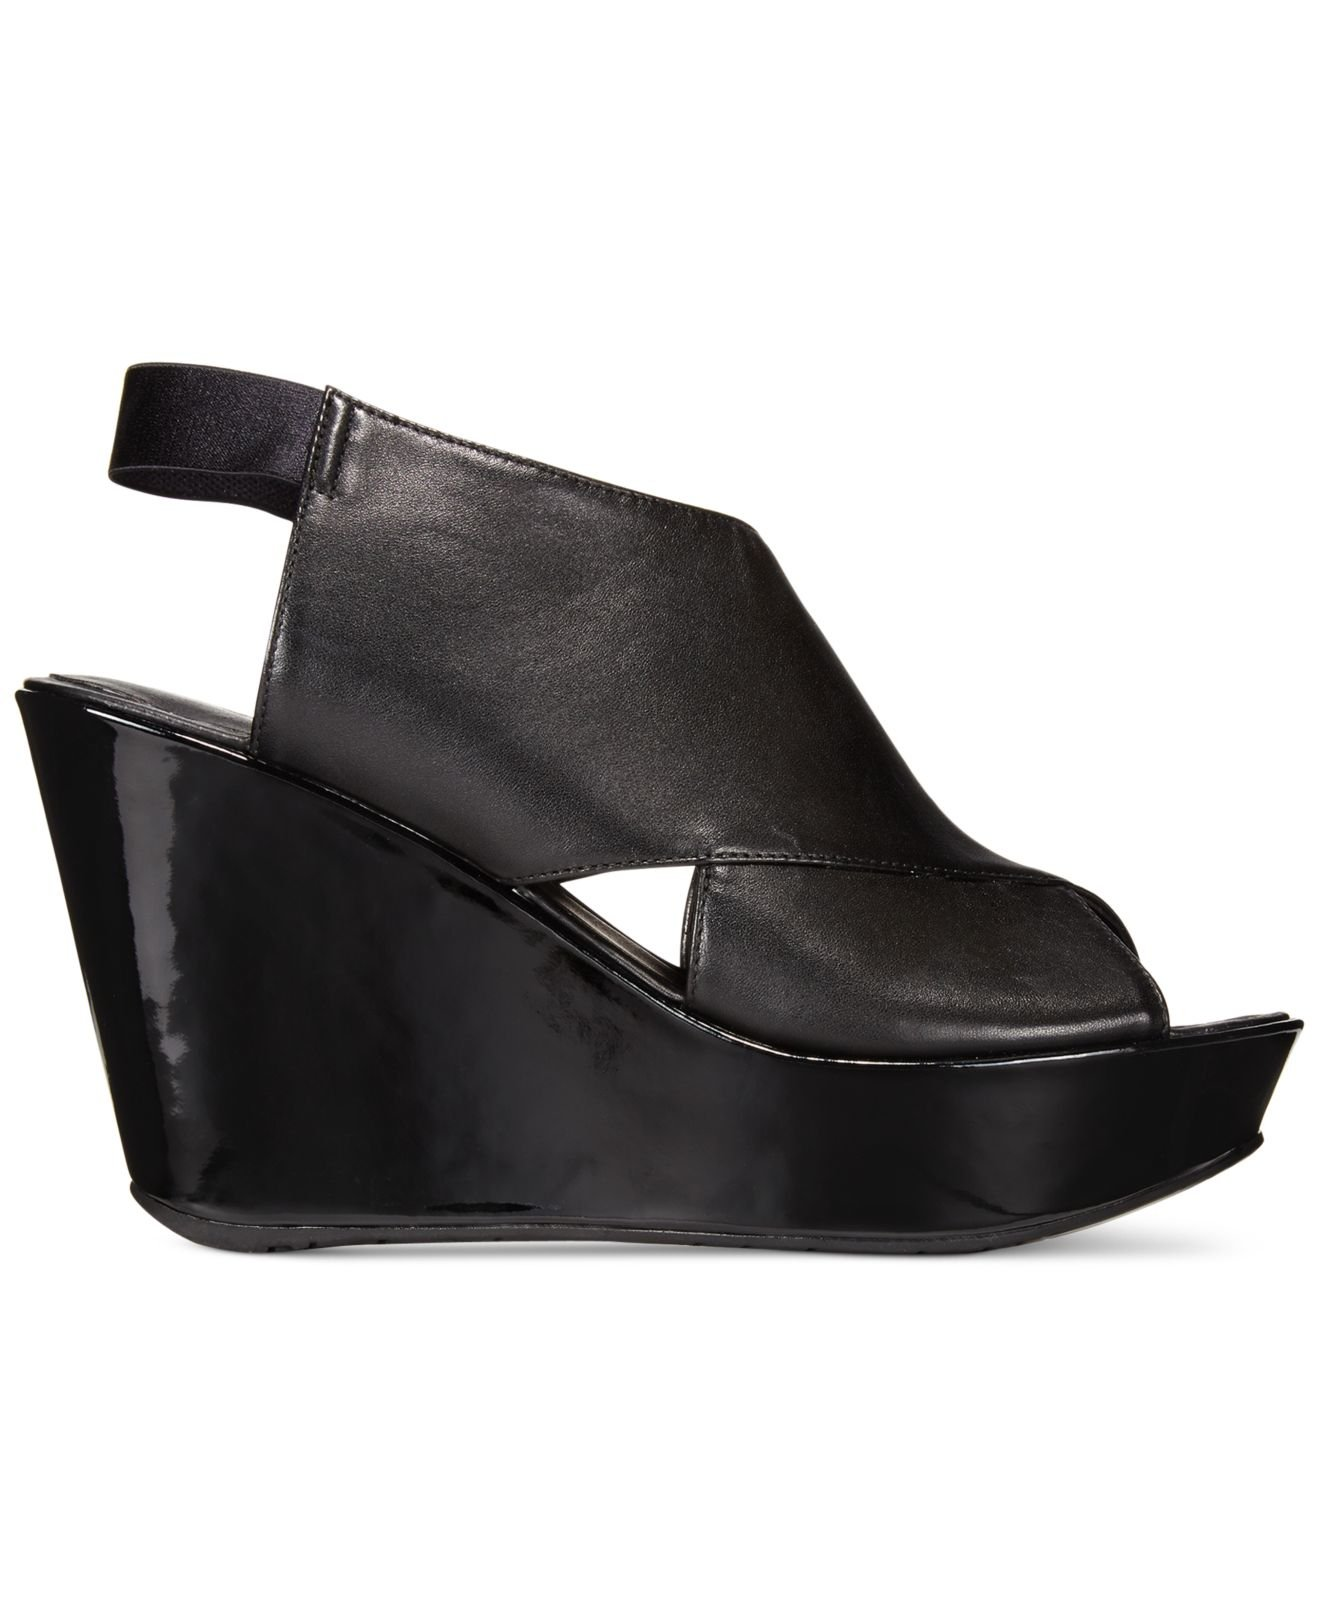 5b0b1255716 Wedge Shoes  Kenneth Cole Reaction Wedge Shoes